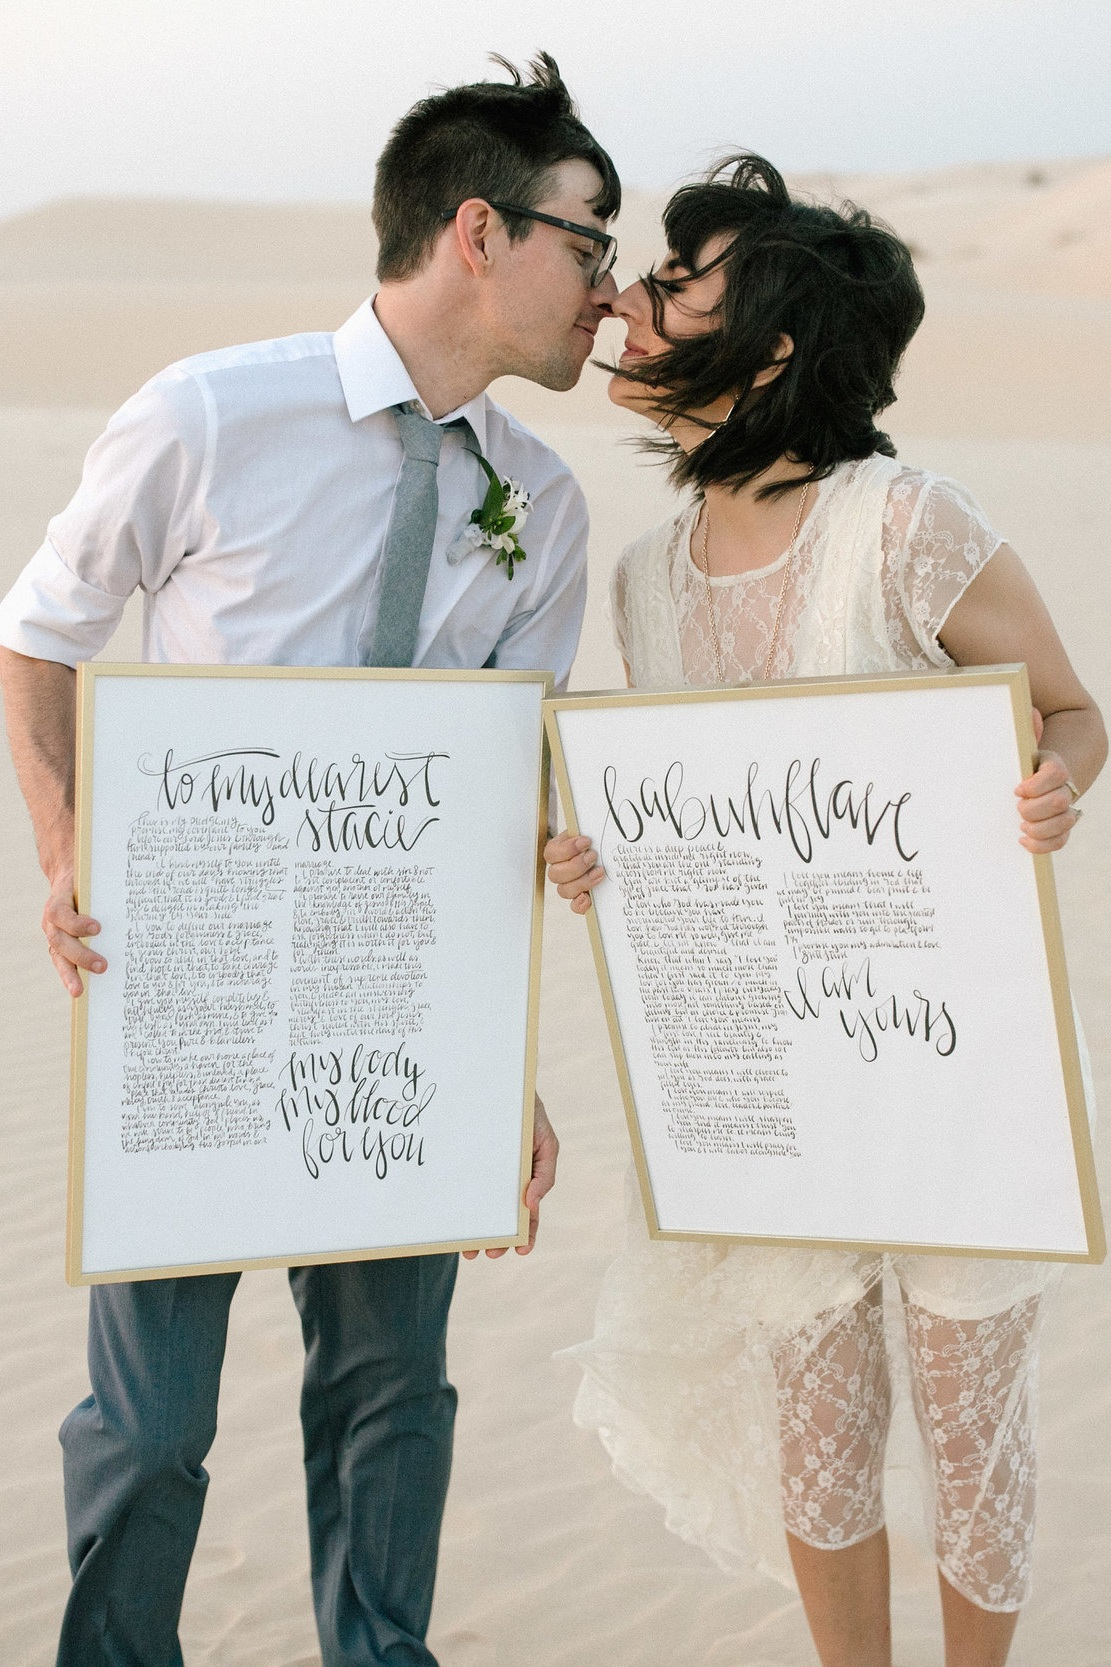 The Original - 16x20 HandWritten Vows on Archival Paper in a Modern Gold Frame